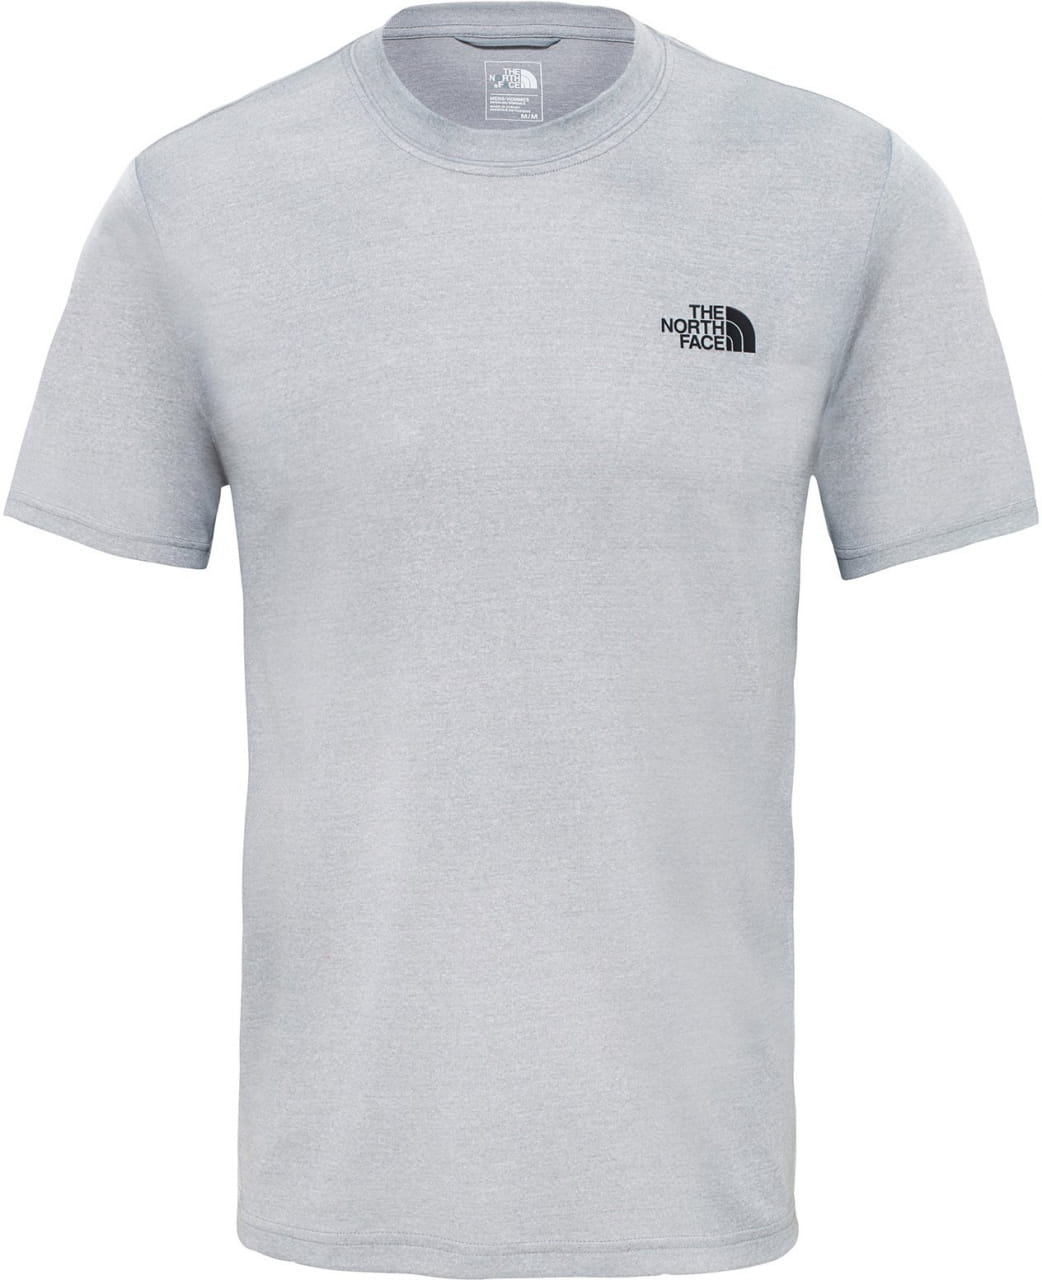 Pánské tričko The North Face Men's Reaxion Amp T-Shirt